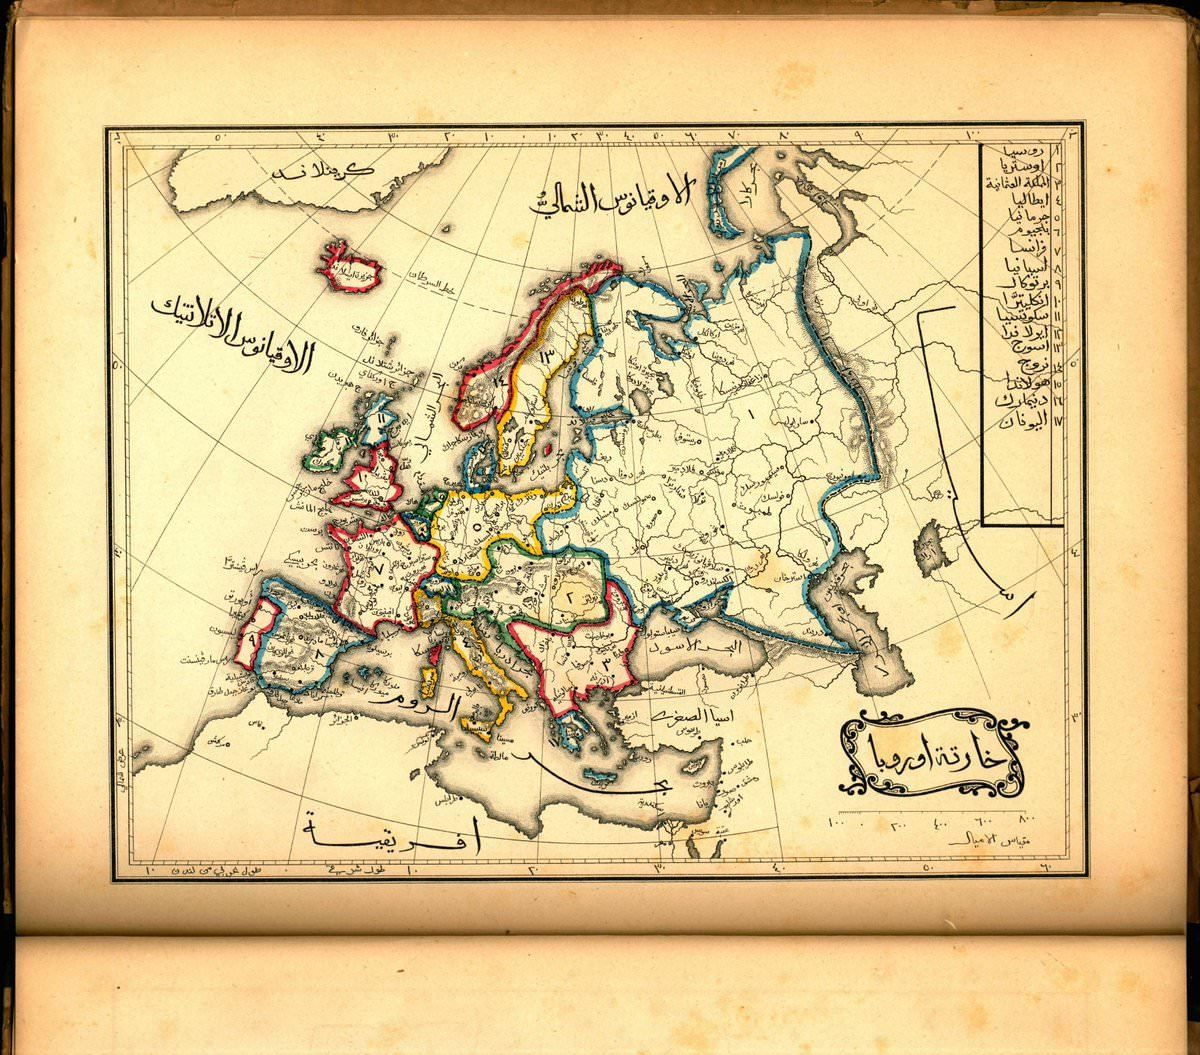 Malta On Map Of Europe.1835 Arabic Map Of Europe Published In Malta Mapmania Map